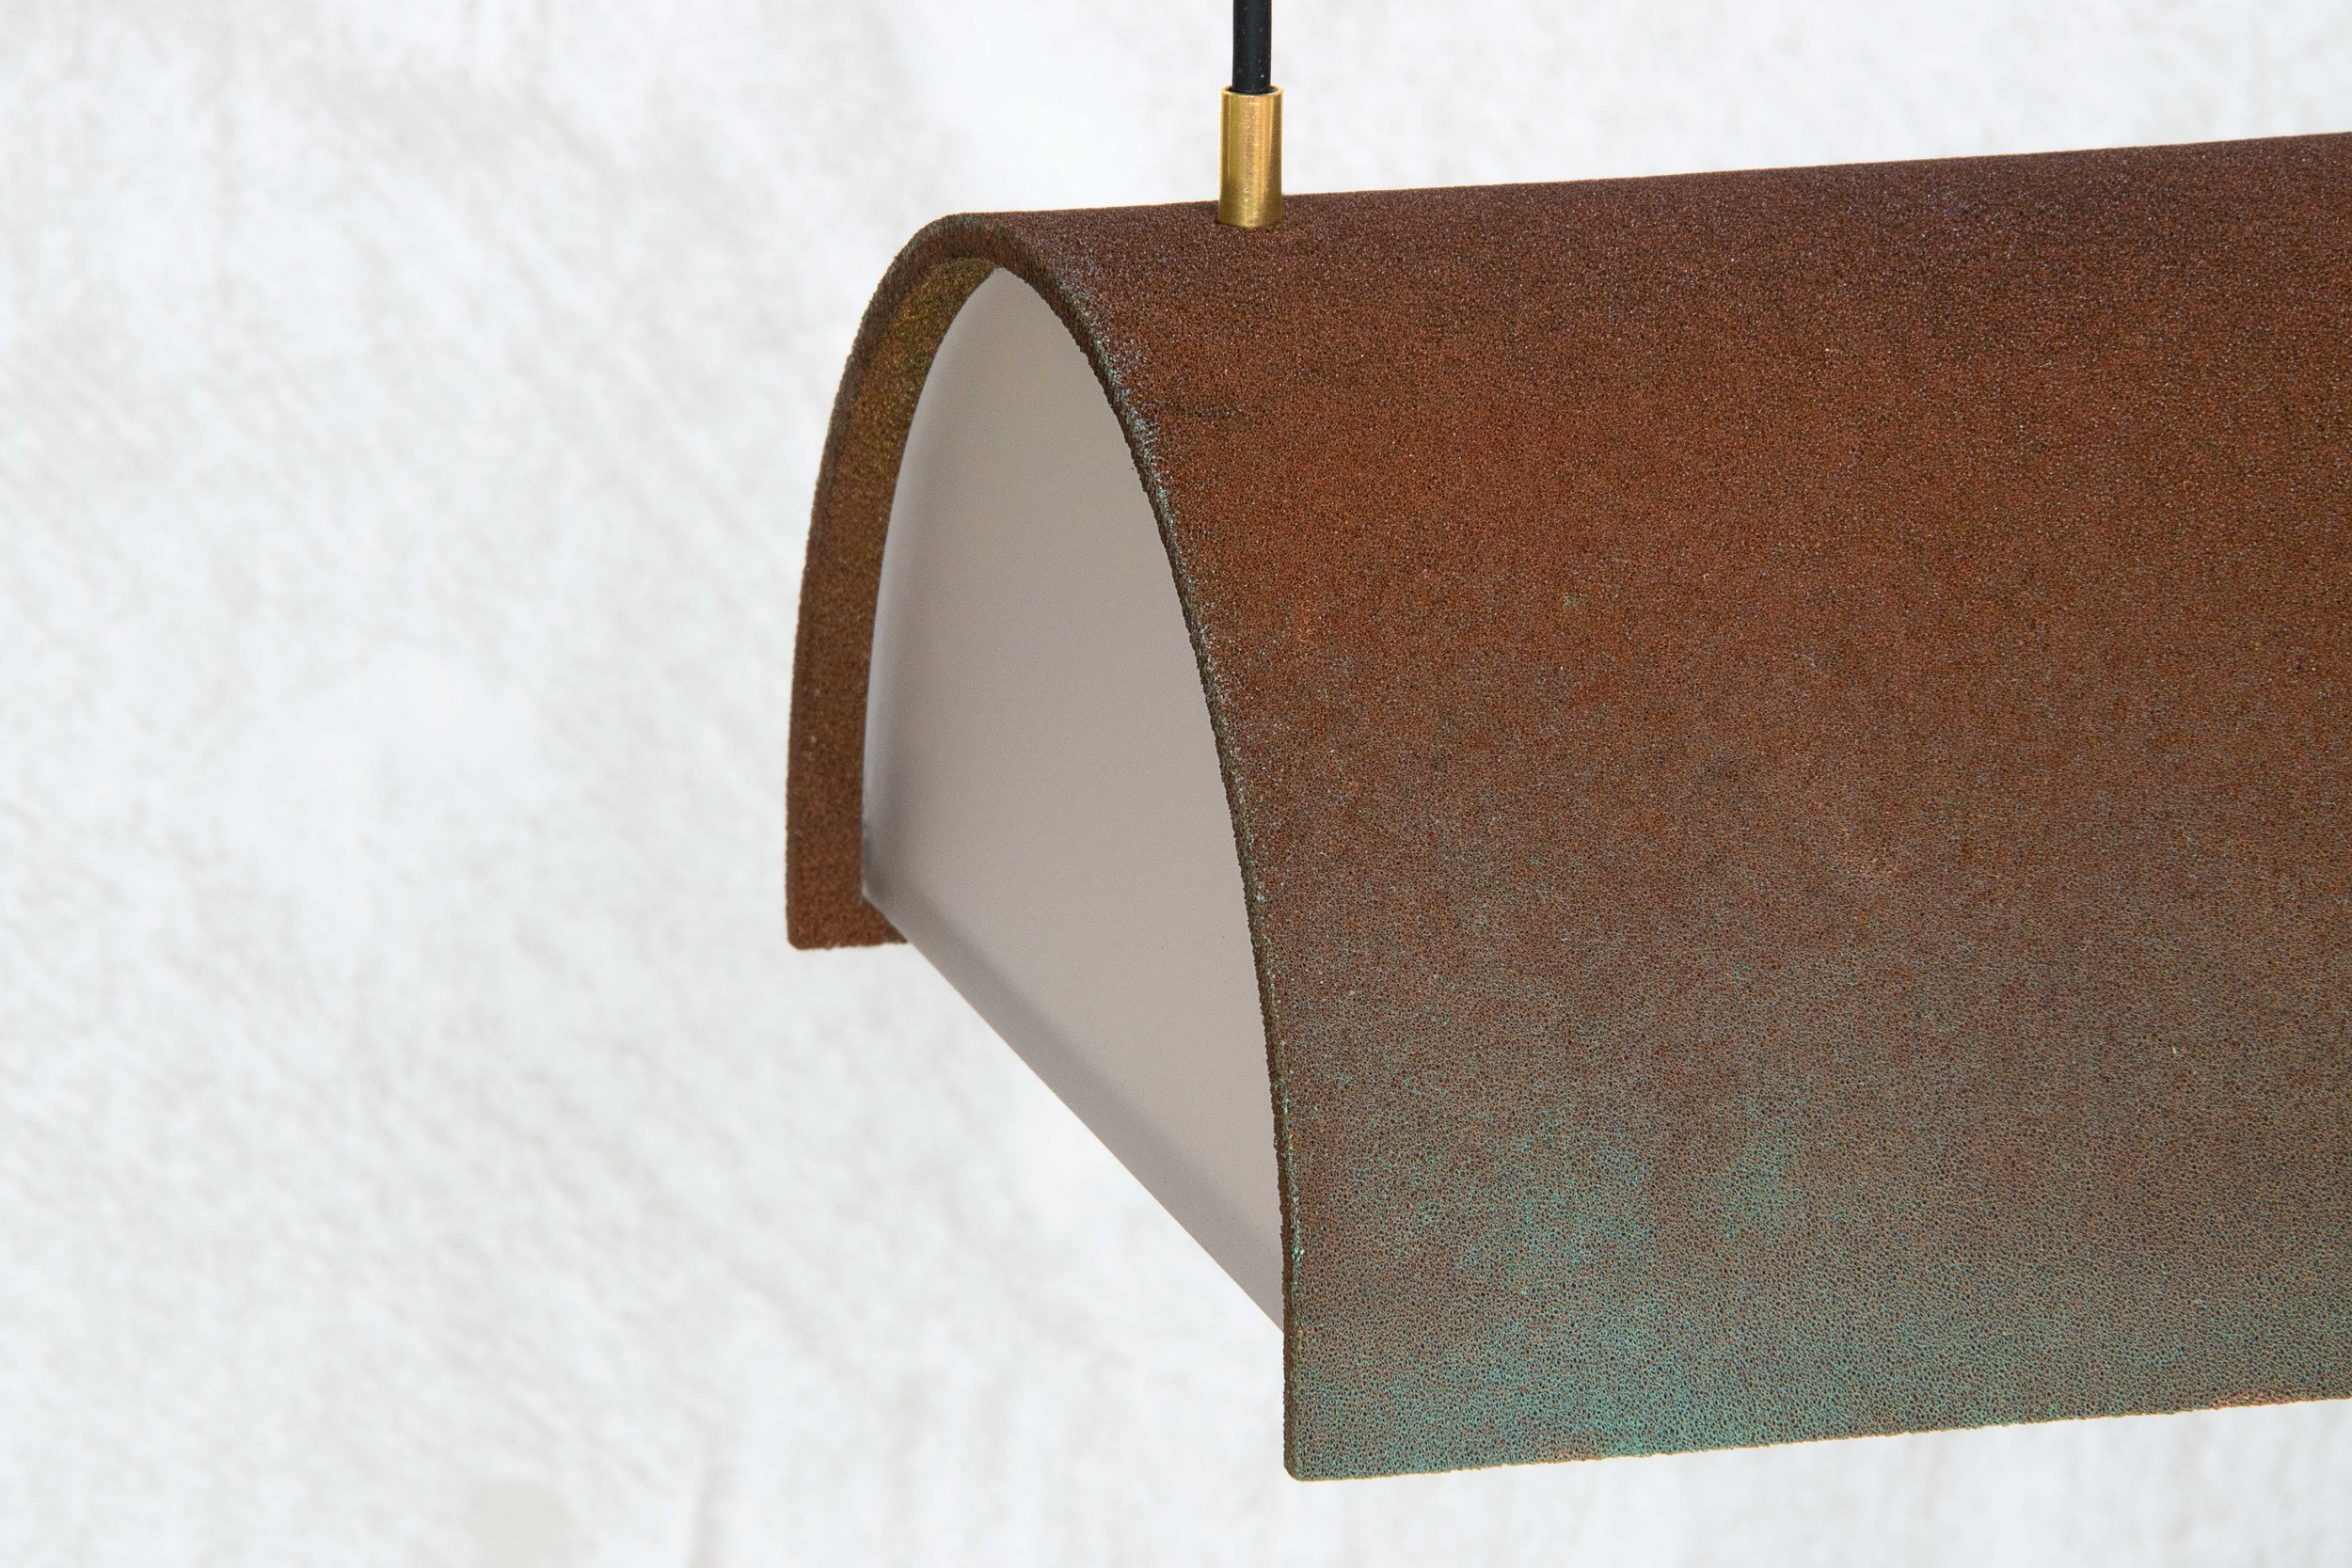 Aero-Light-copper---detail---David-Derksen-Design.jpg